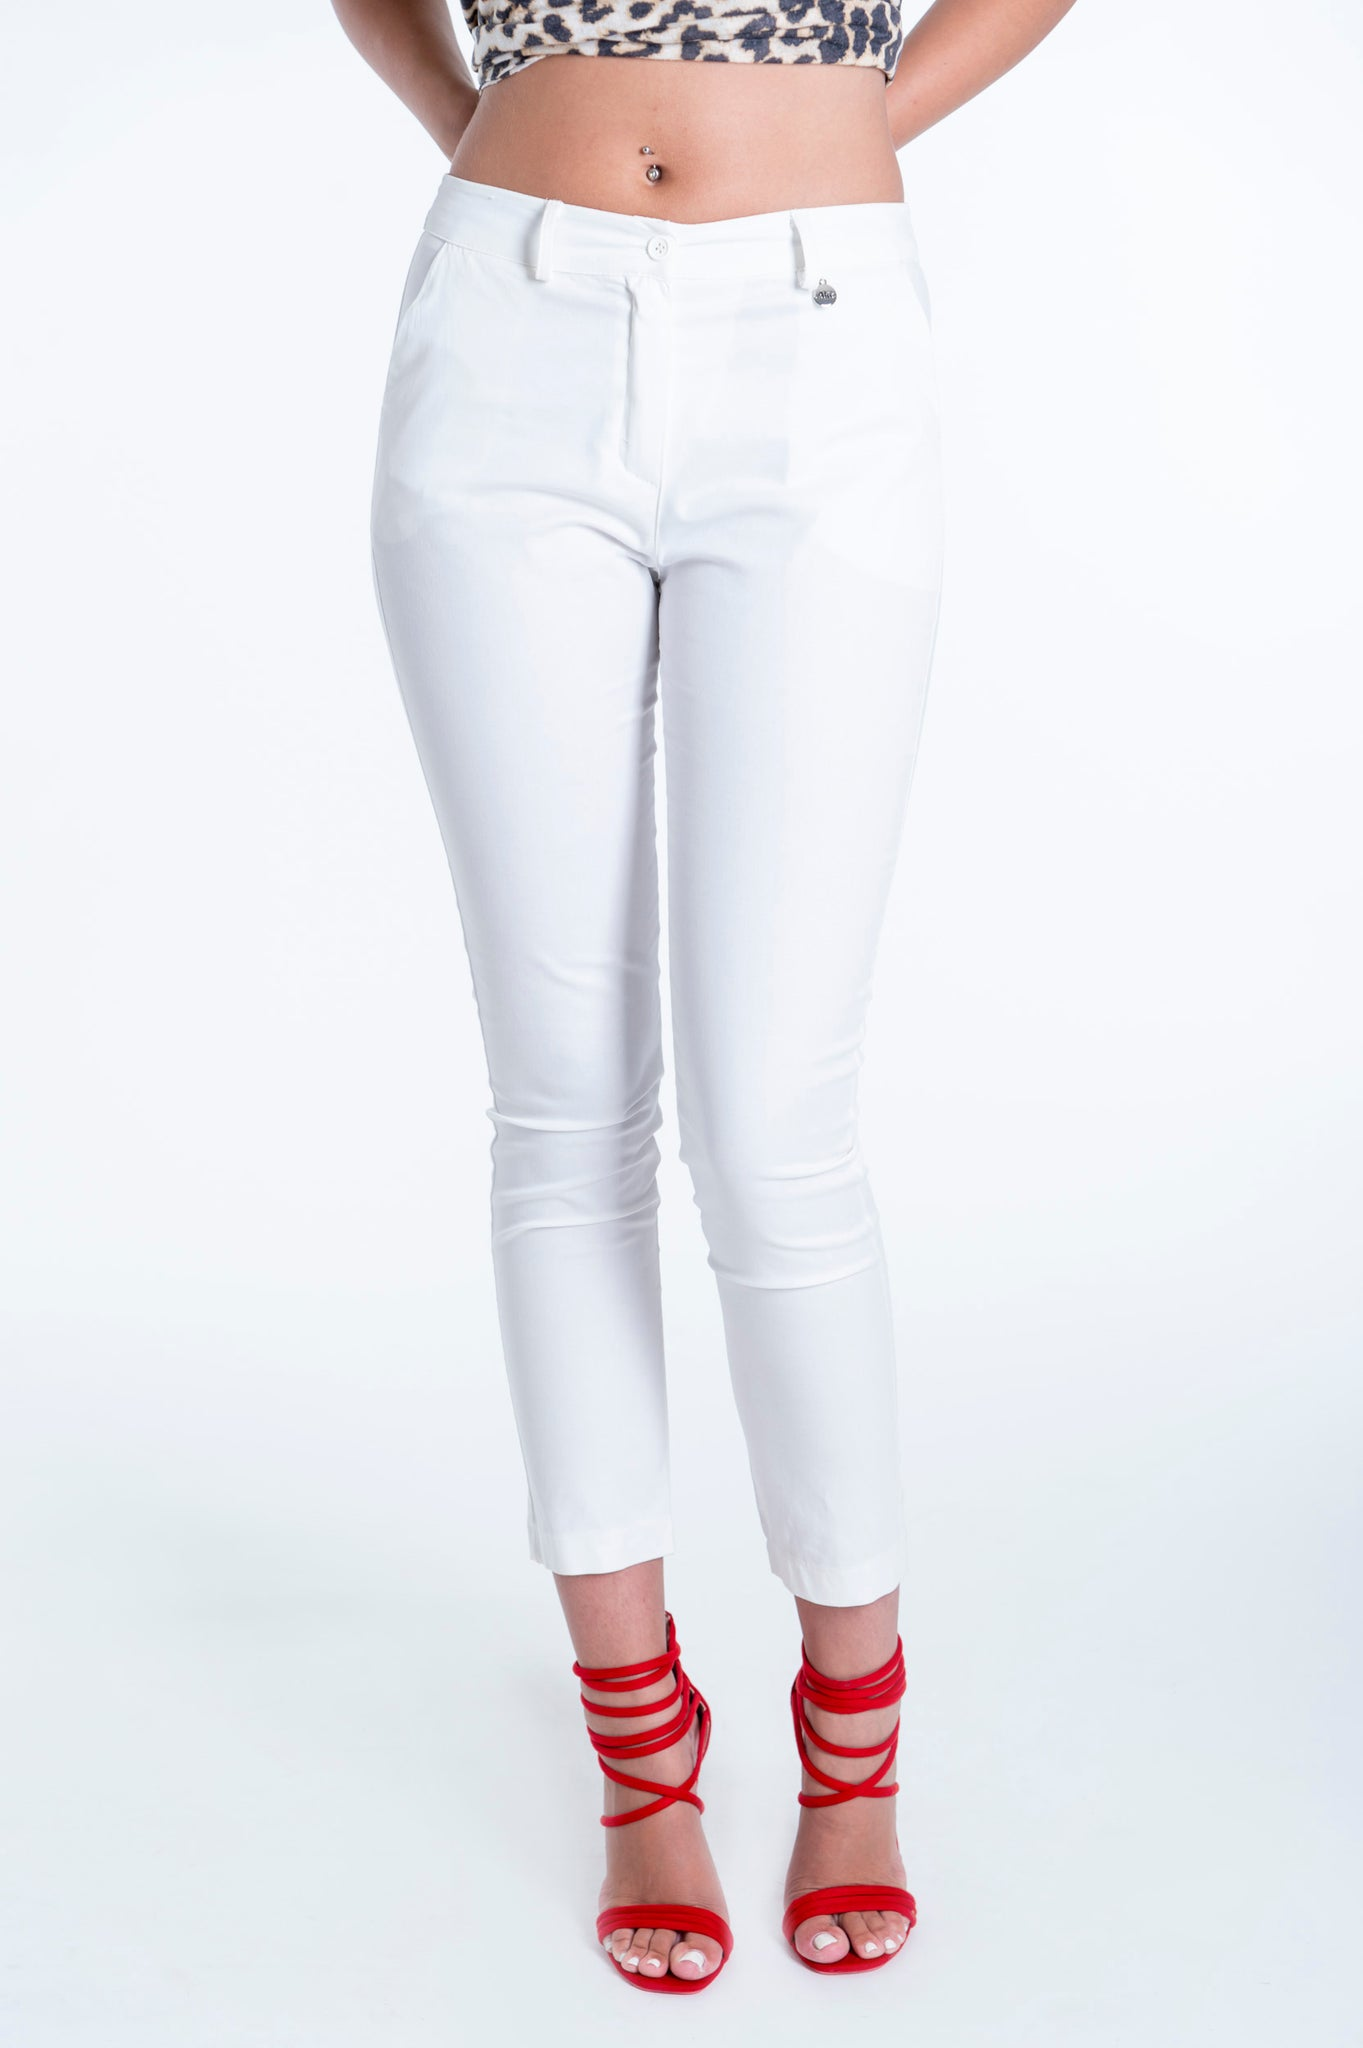 Akè basic ankle length trousers